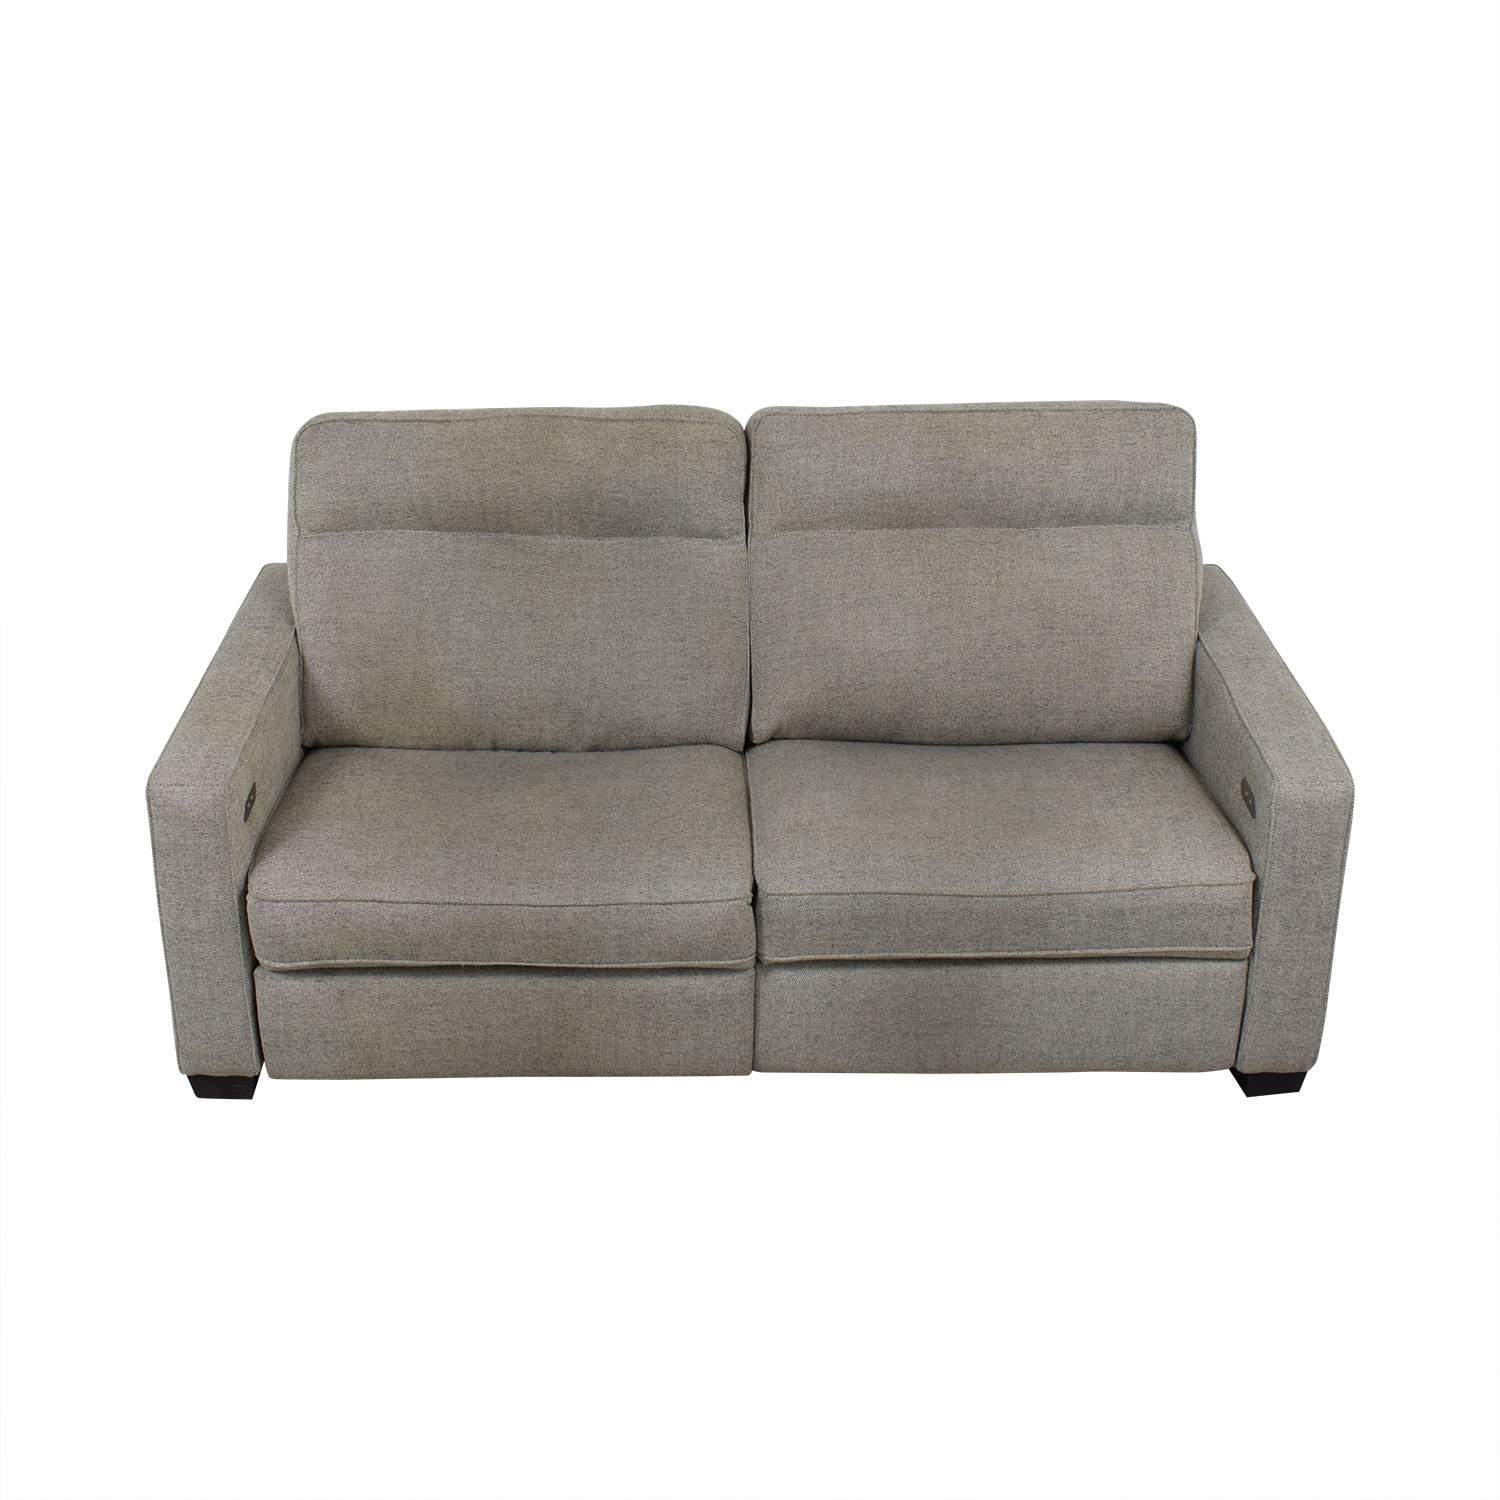 81 Off West Elm West Elm Henry Power Recliner Sofa Sofas